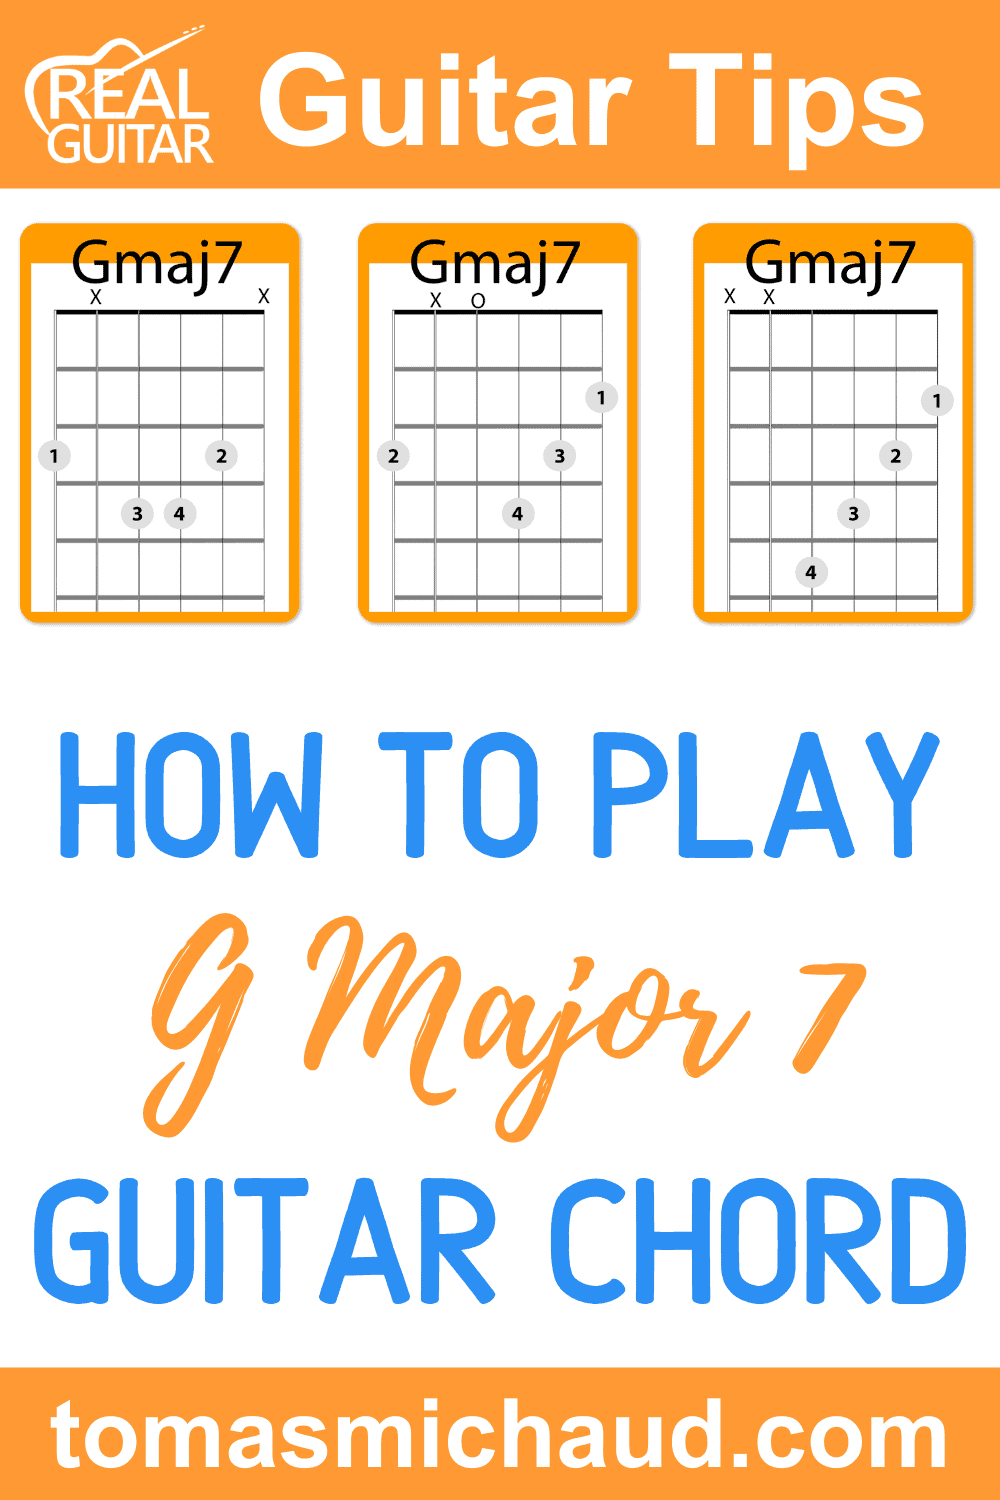 How to Play G Major 7 Guitar Chord